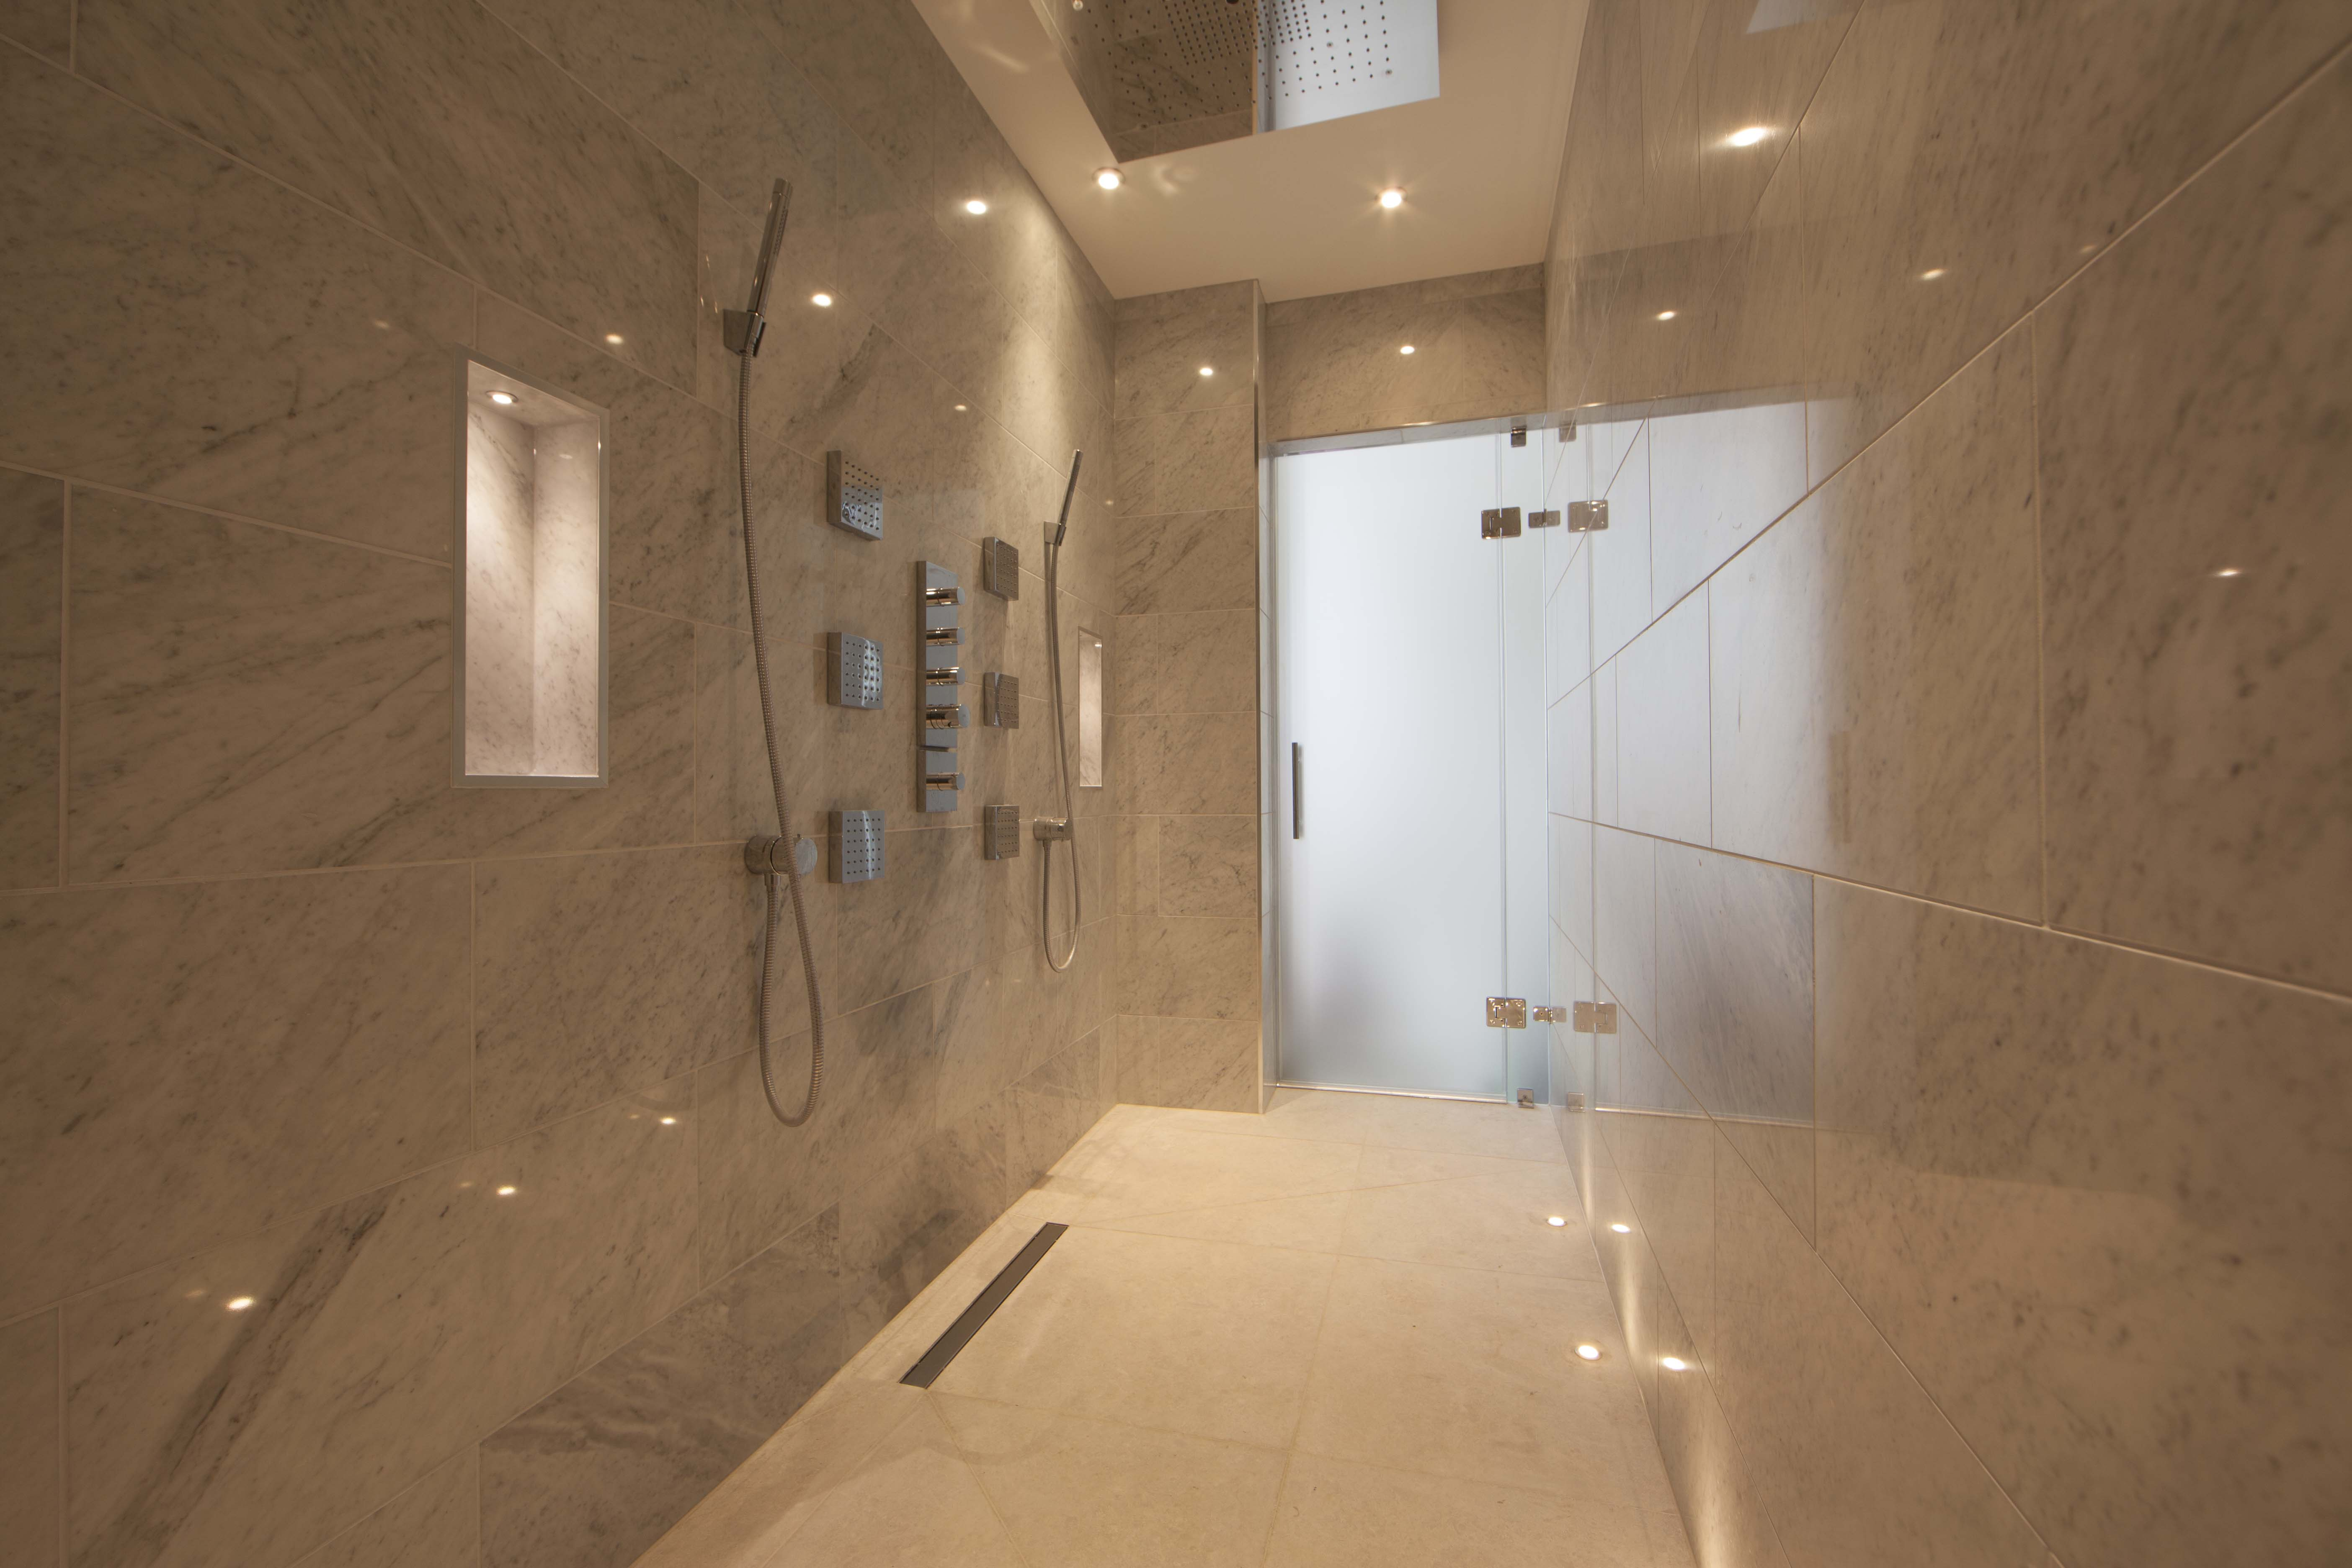 Wet room fitters installation services ccl wetrooms for Bathroom design service